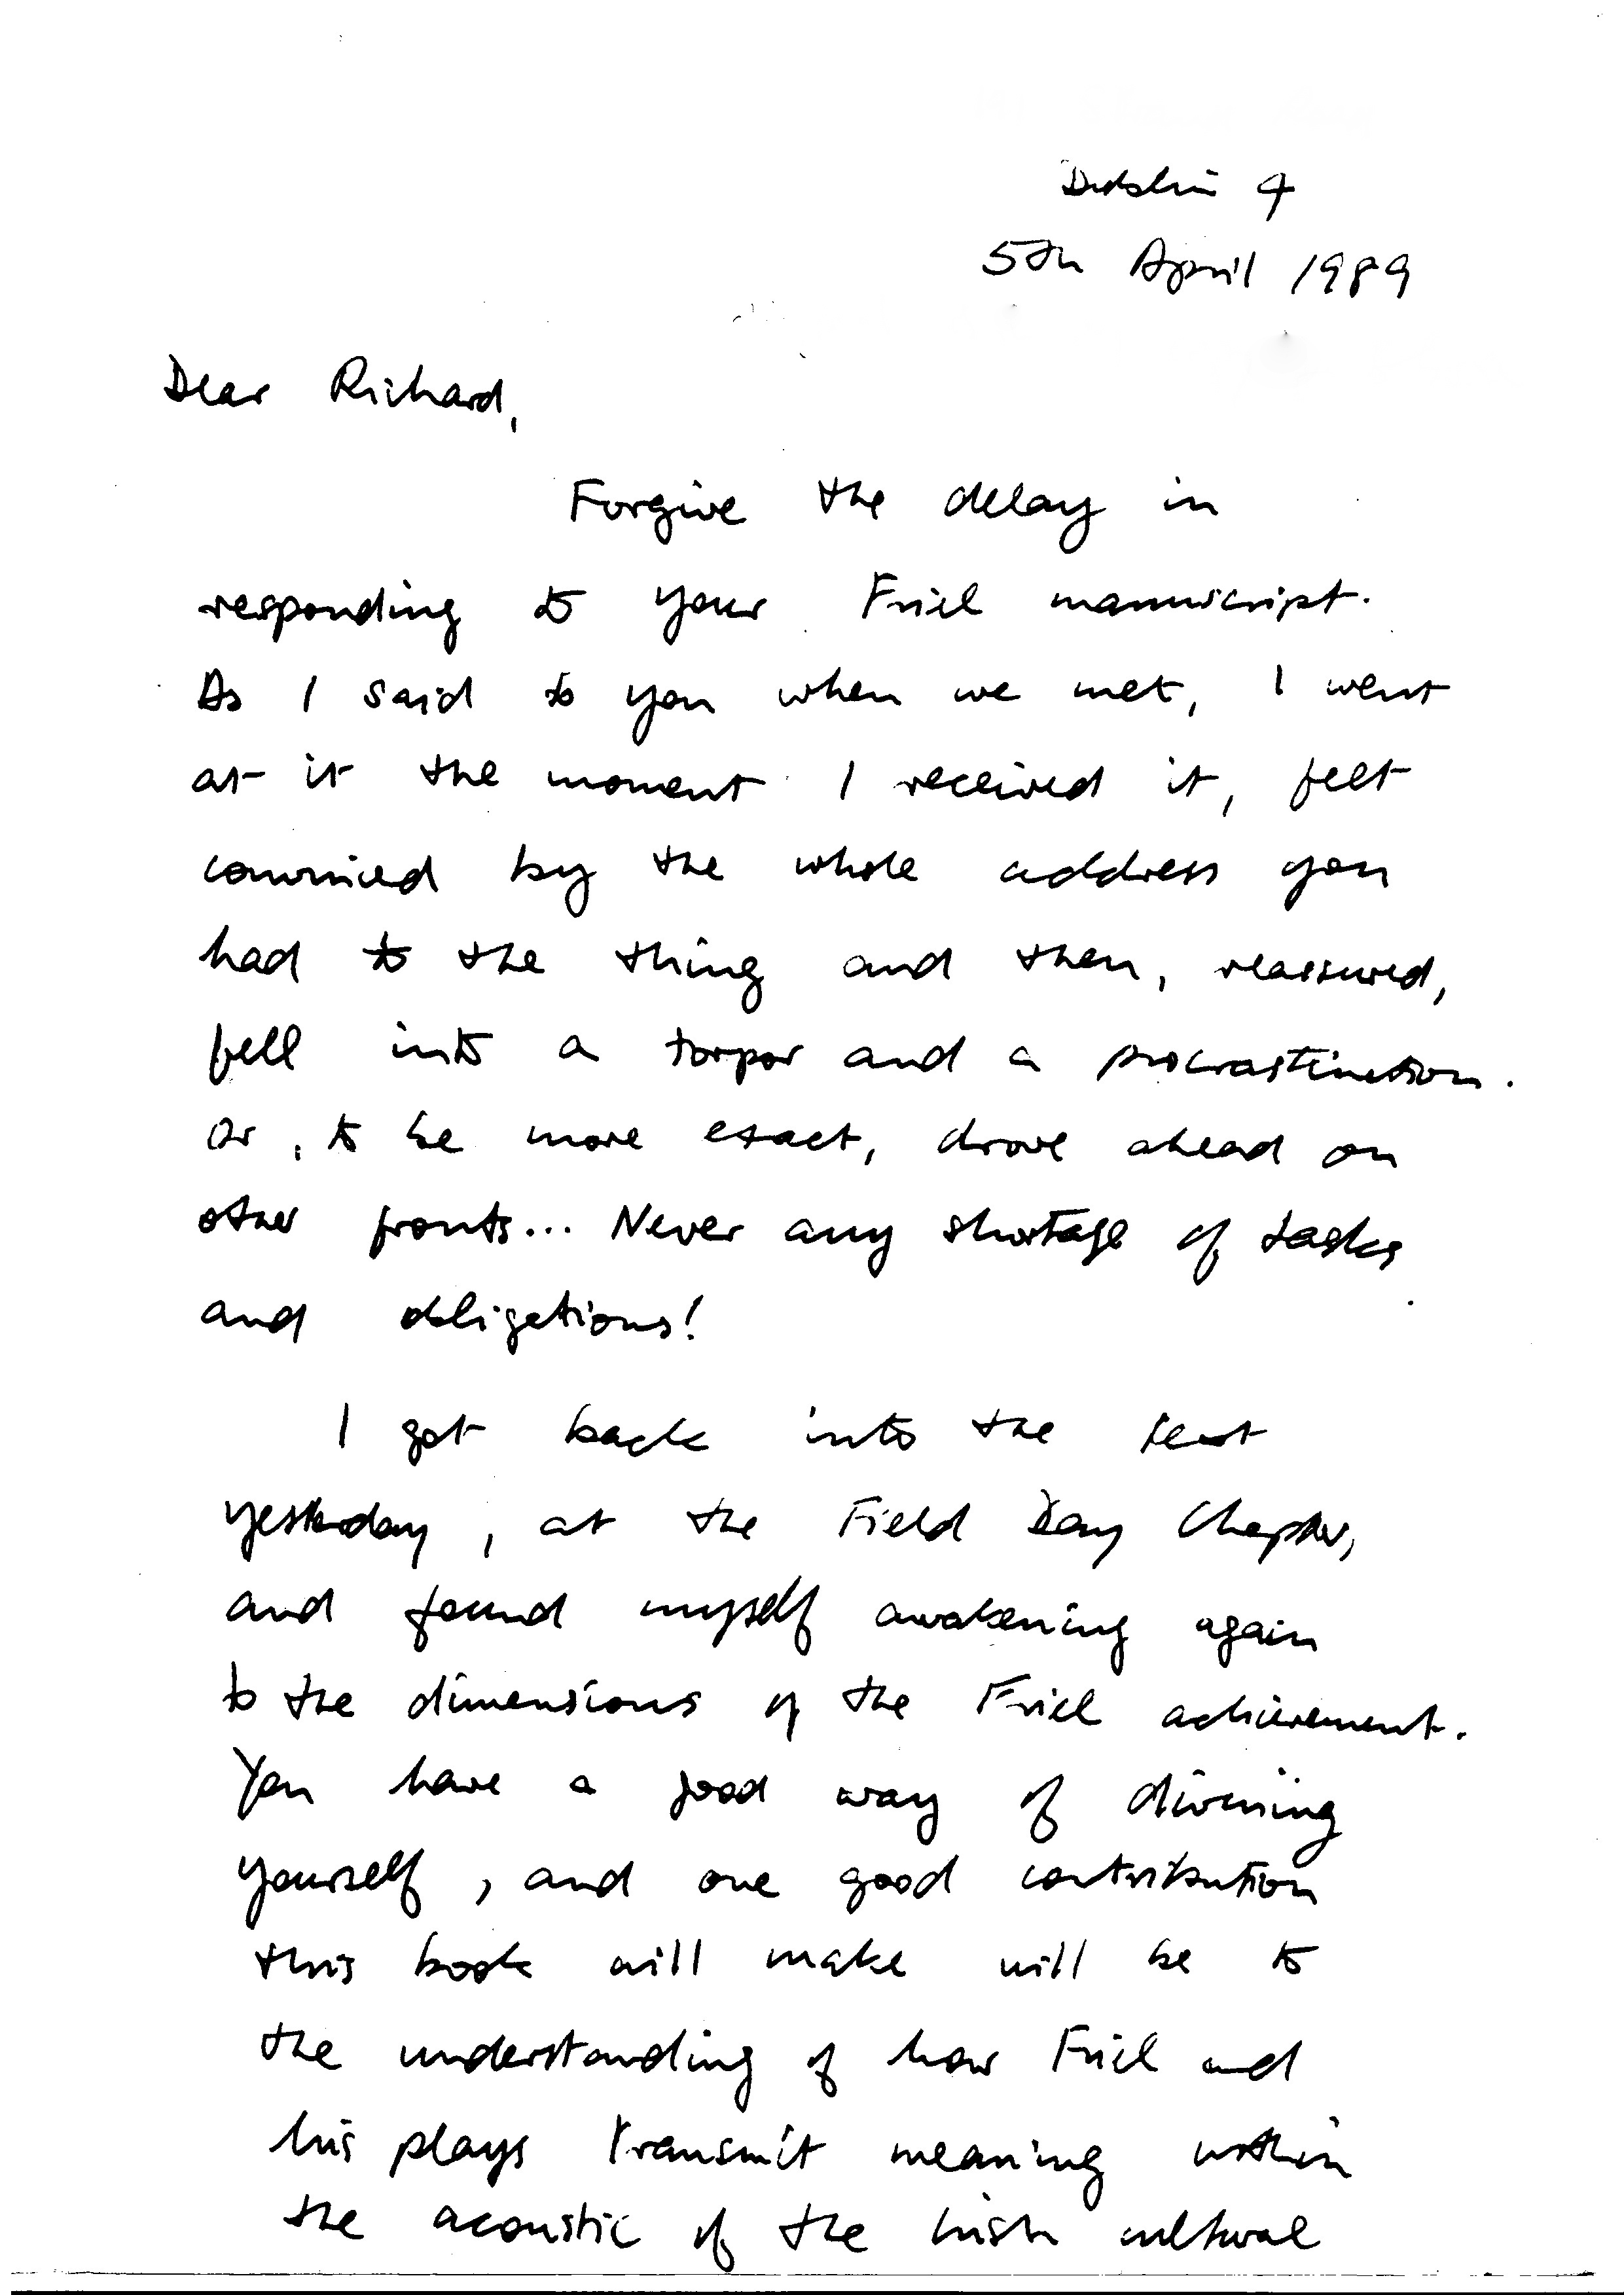 Letter to Richard Pine from Seamus Heaney, dated 5 April 1989 (page 1)